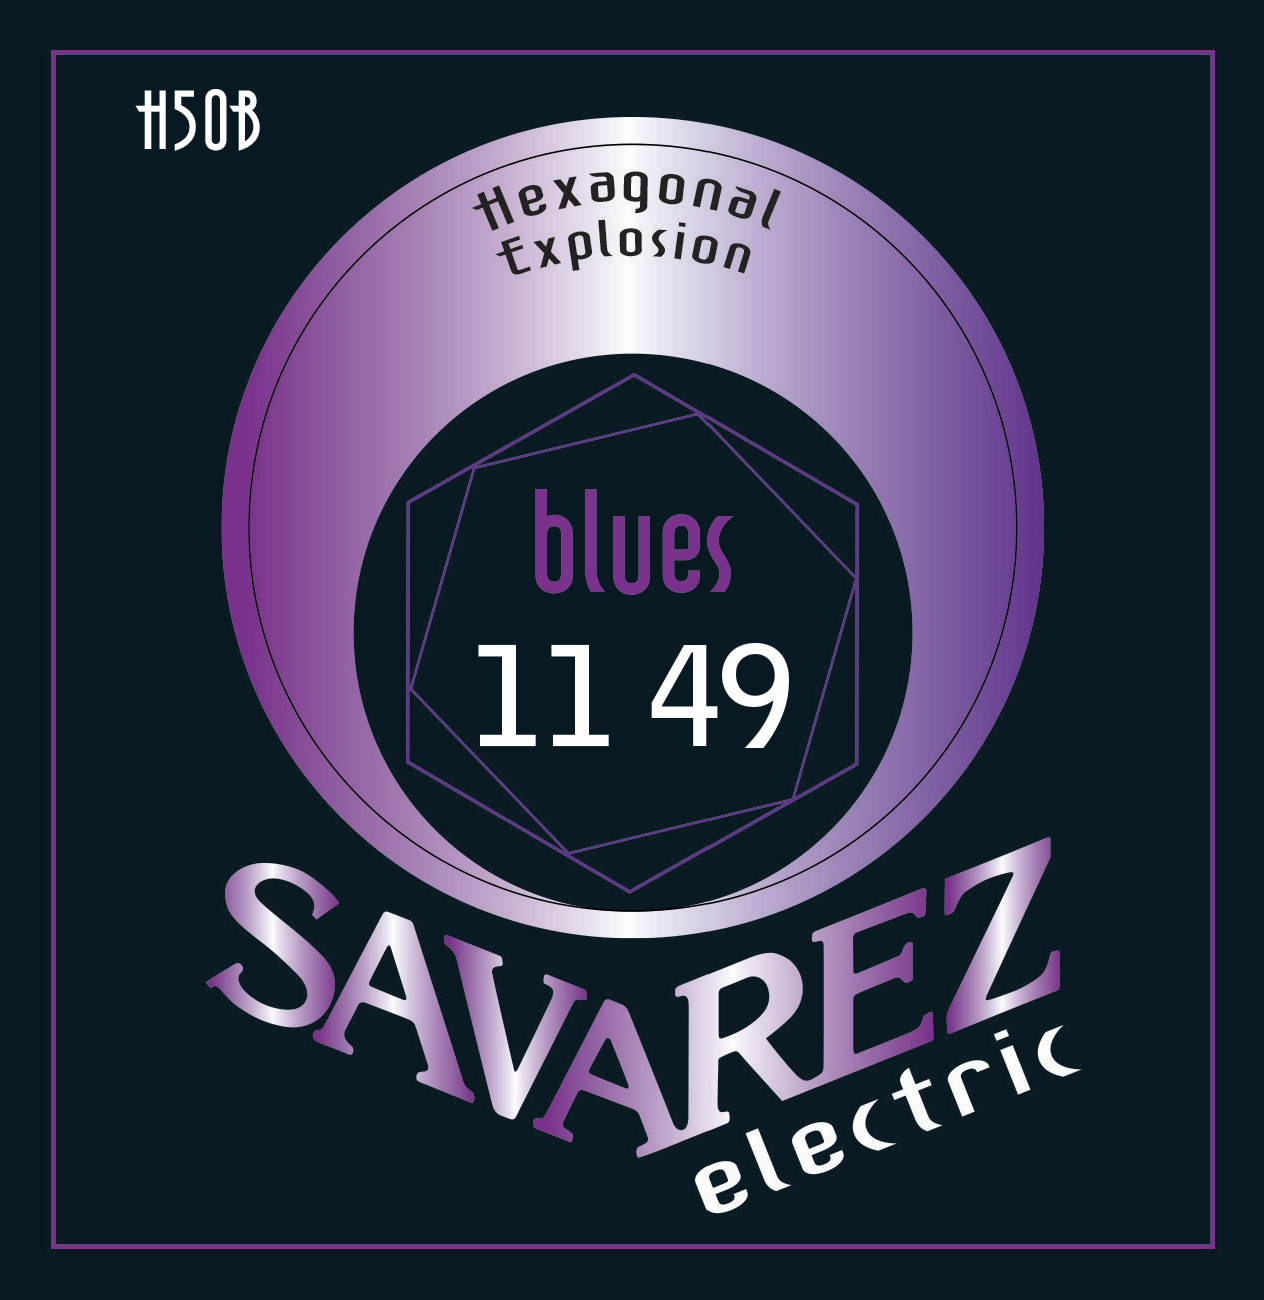 SAVAREZ ELECTRIC HEXAGONAL EXPLOSION H50B